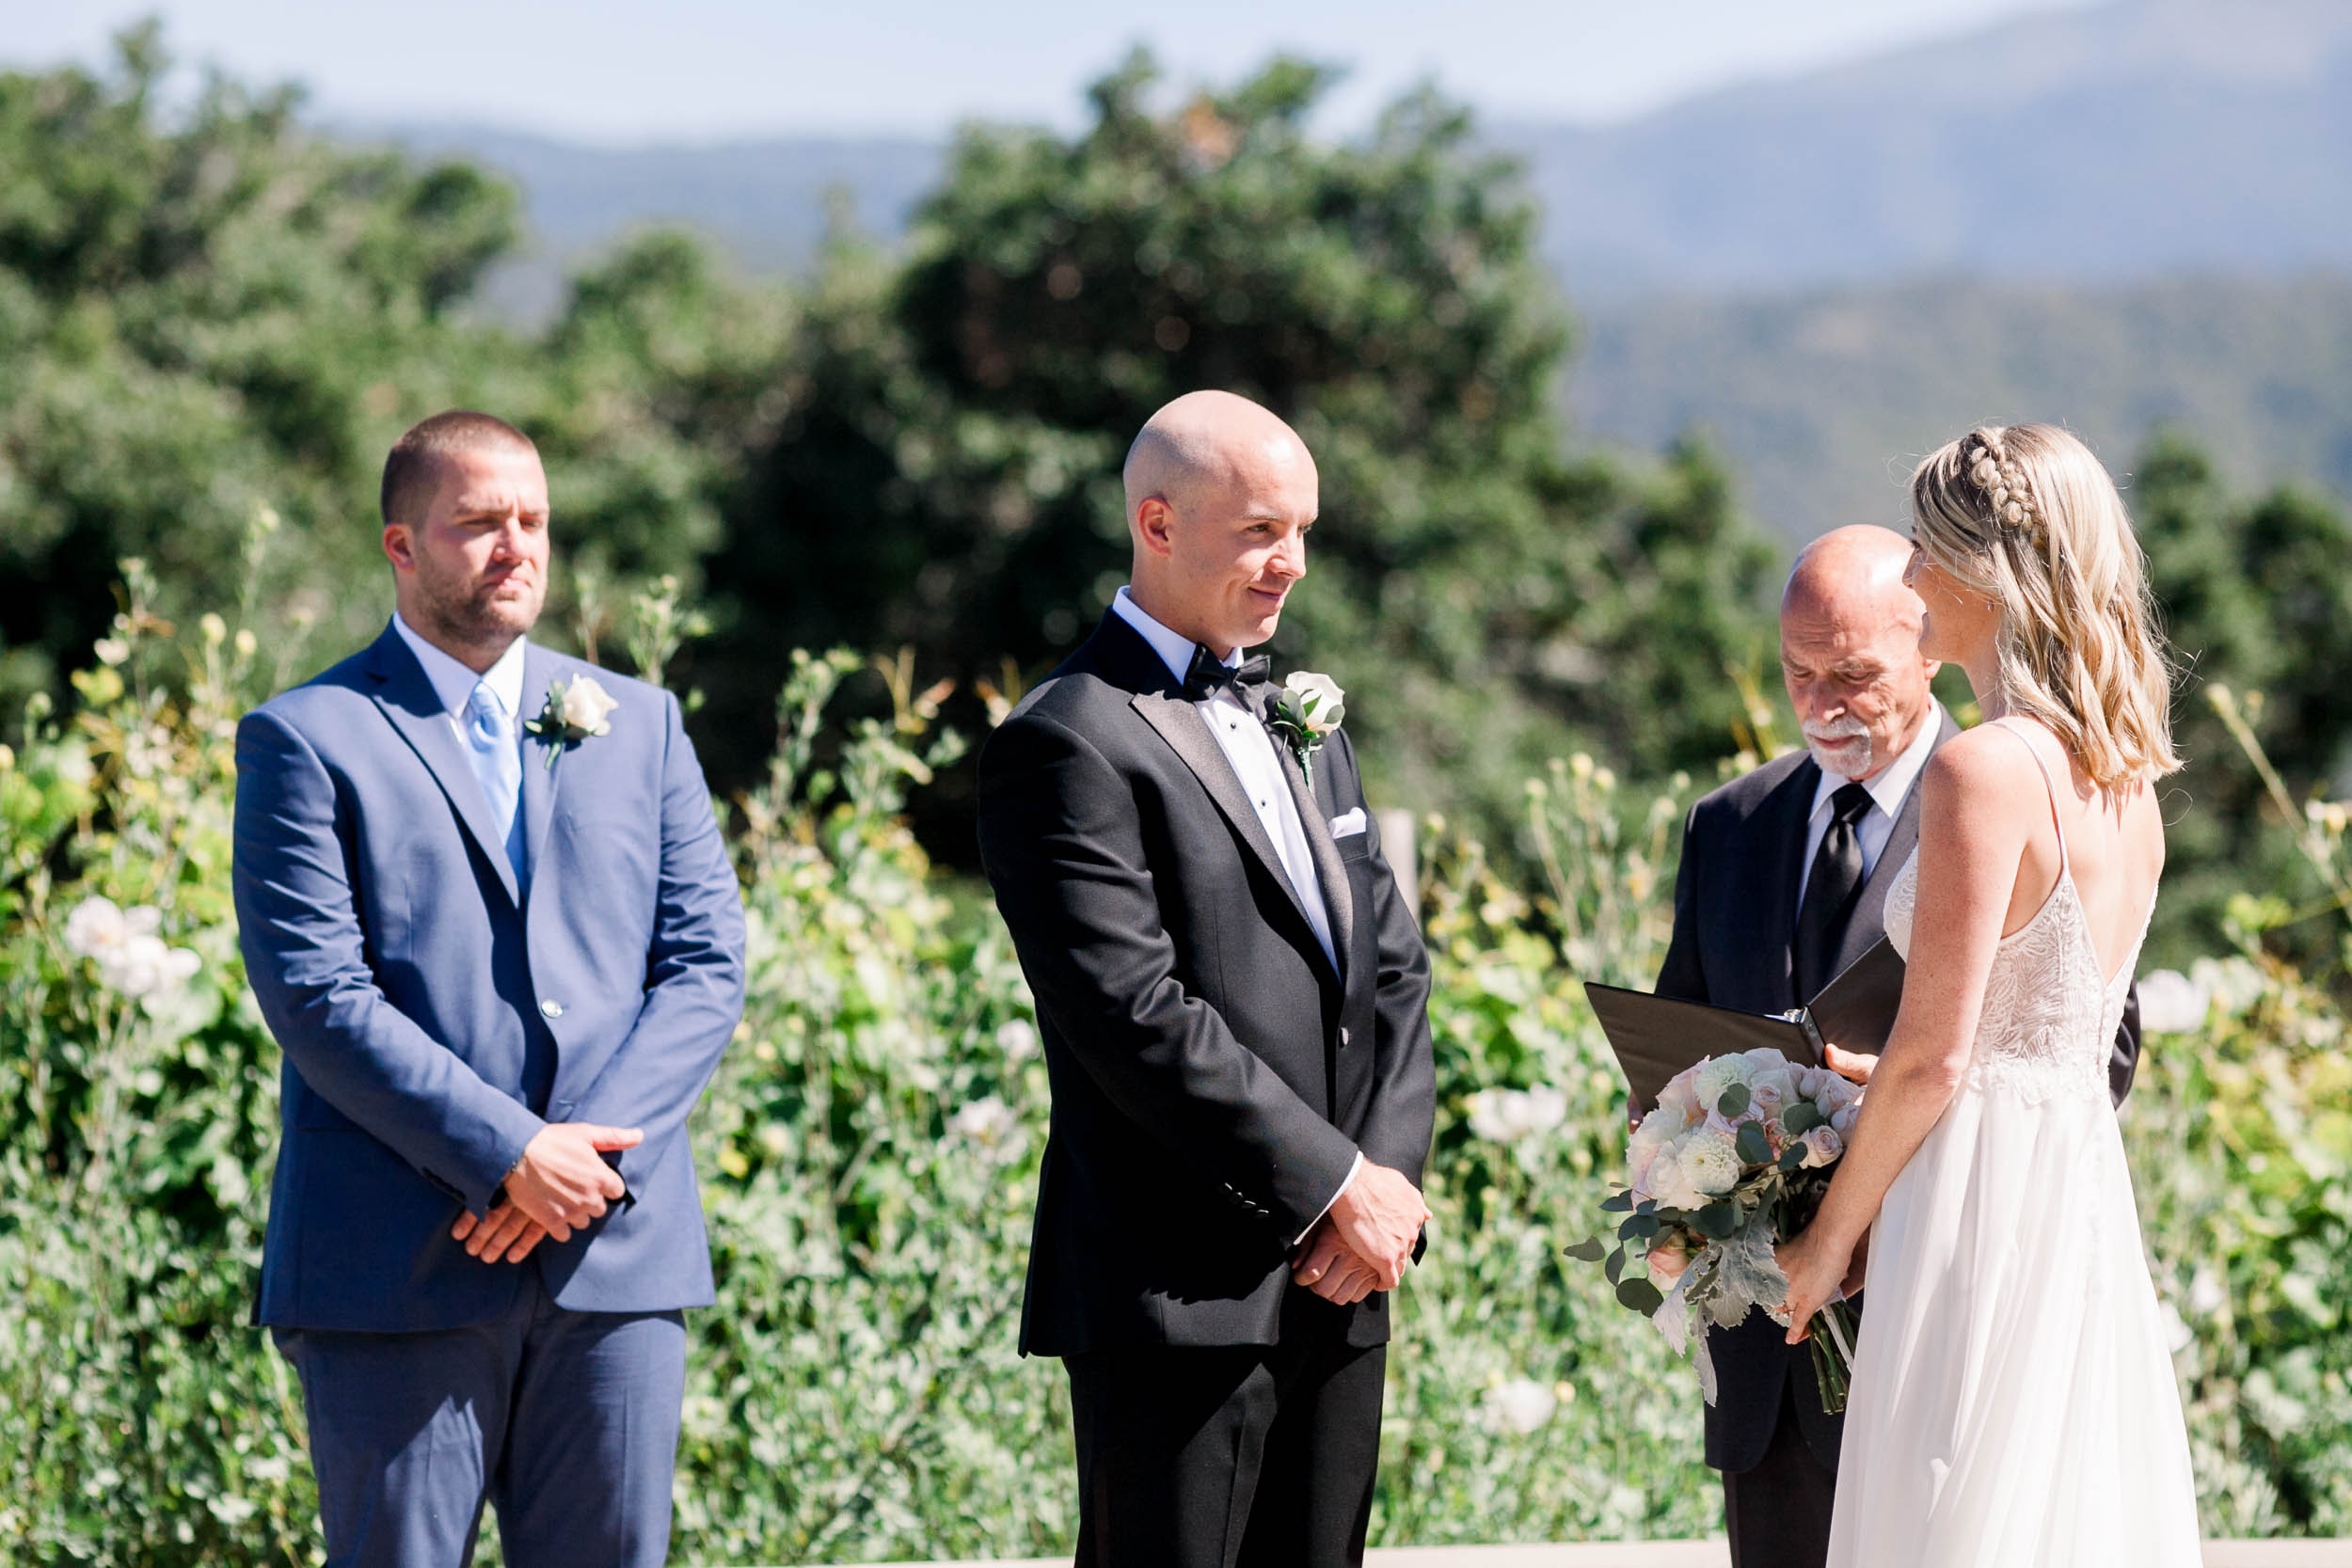 C+D_Holman Ranch Wedding_Carmel Valley_Buena Lane Photography_060619_ER250.jpg